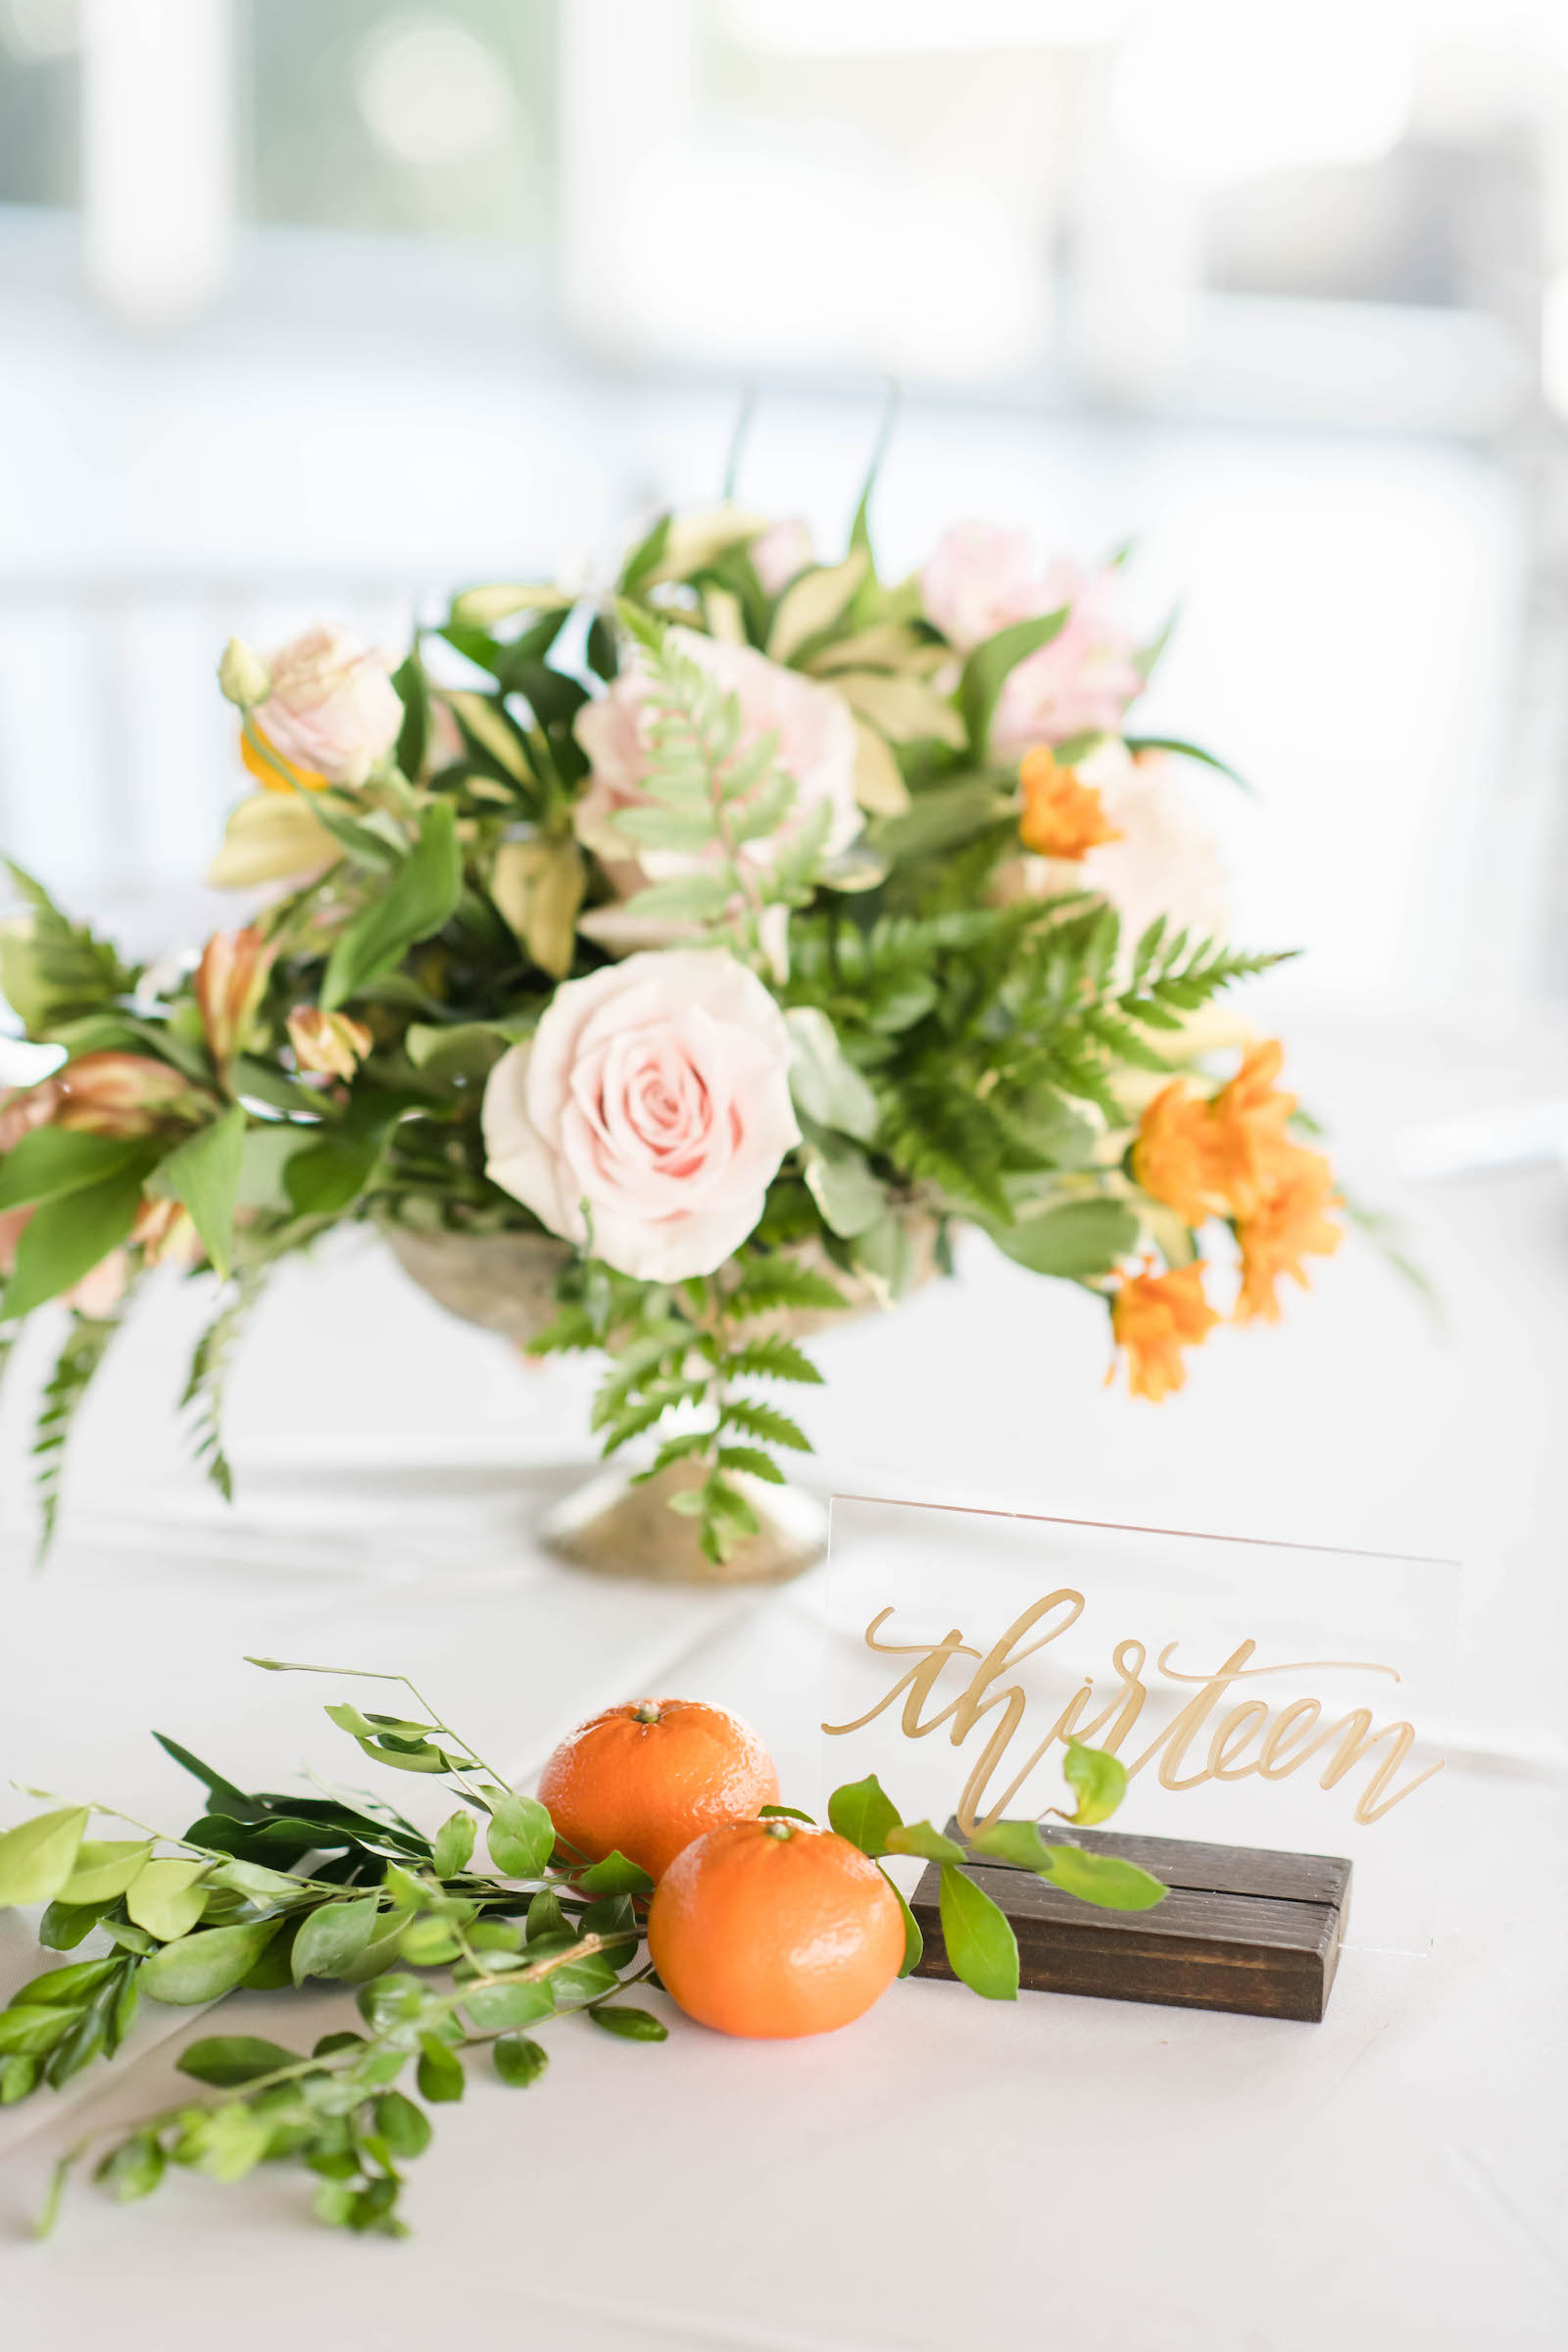 Tropical Wedding Reception Decor, Low Floral Centerpiece, Blush Pink and Orange Flowers, Greenery, Tangerine Fruits and Acrylic with Gold Script Table Number | Tampa Bay Wedding Planner Coastal Coordinating